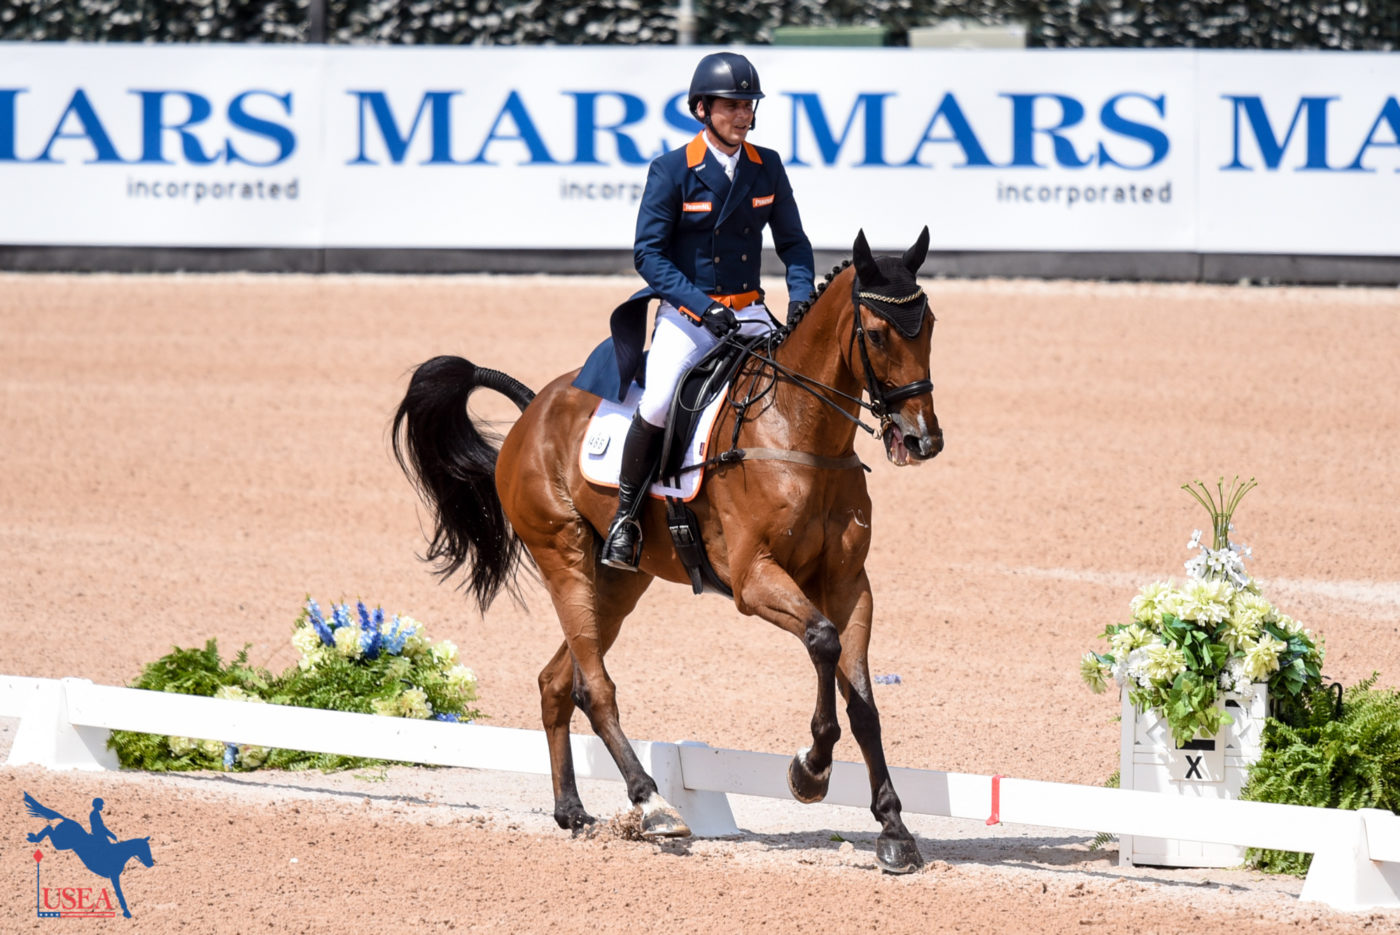 78th - Theo Van De Vendel and Zindane (NED)